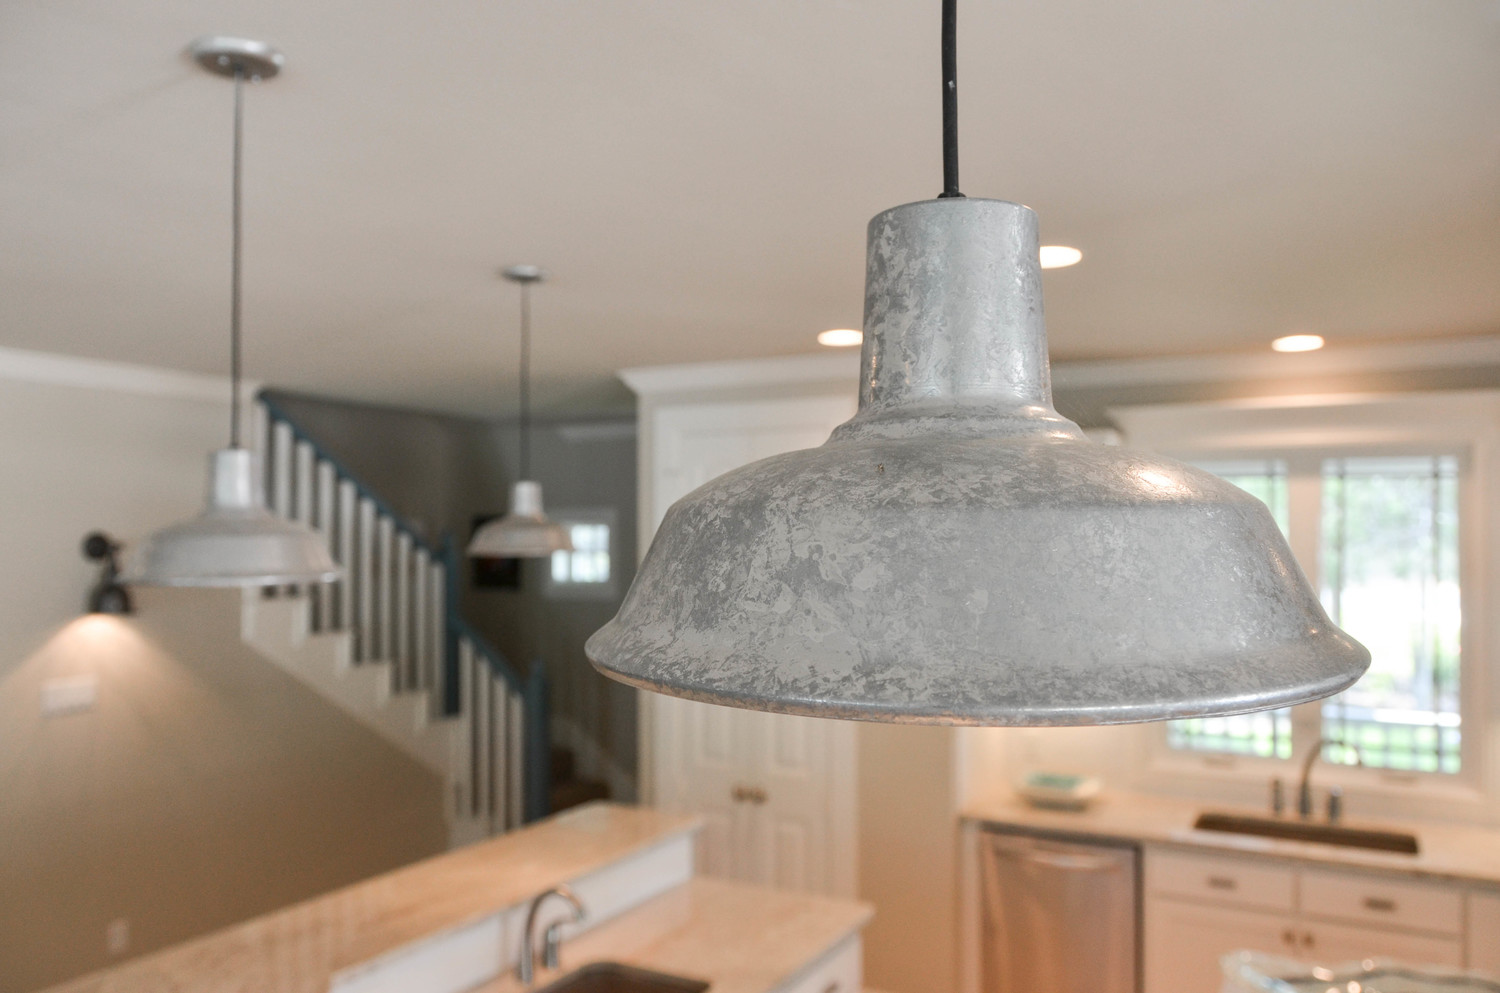 Aluminum island pendant light. Rustic kitchen pendant light.